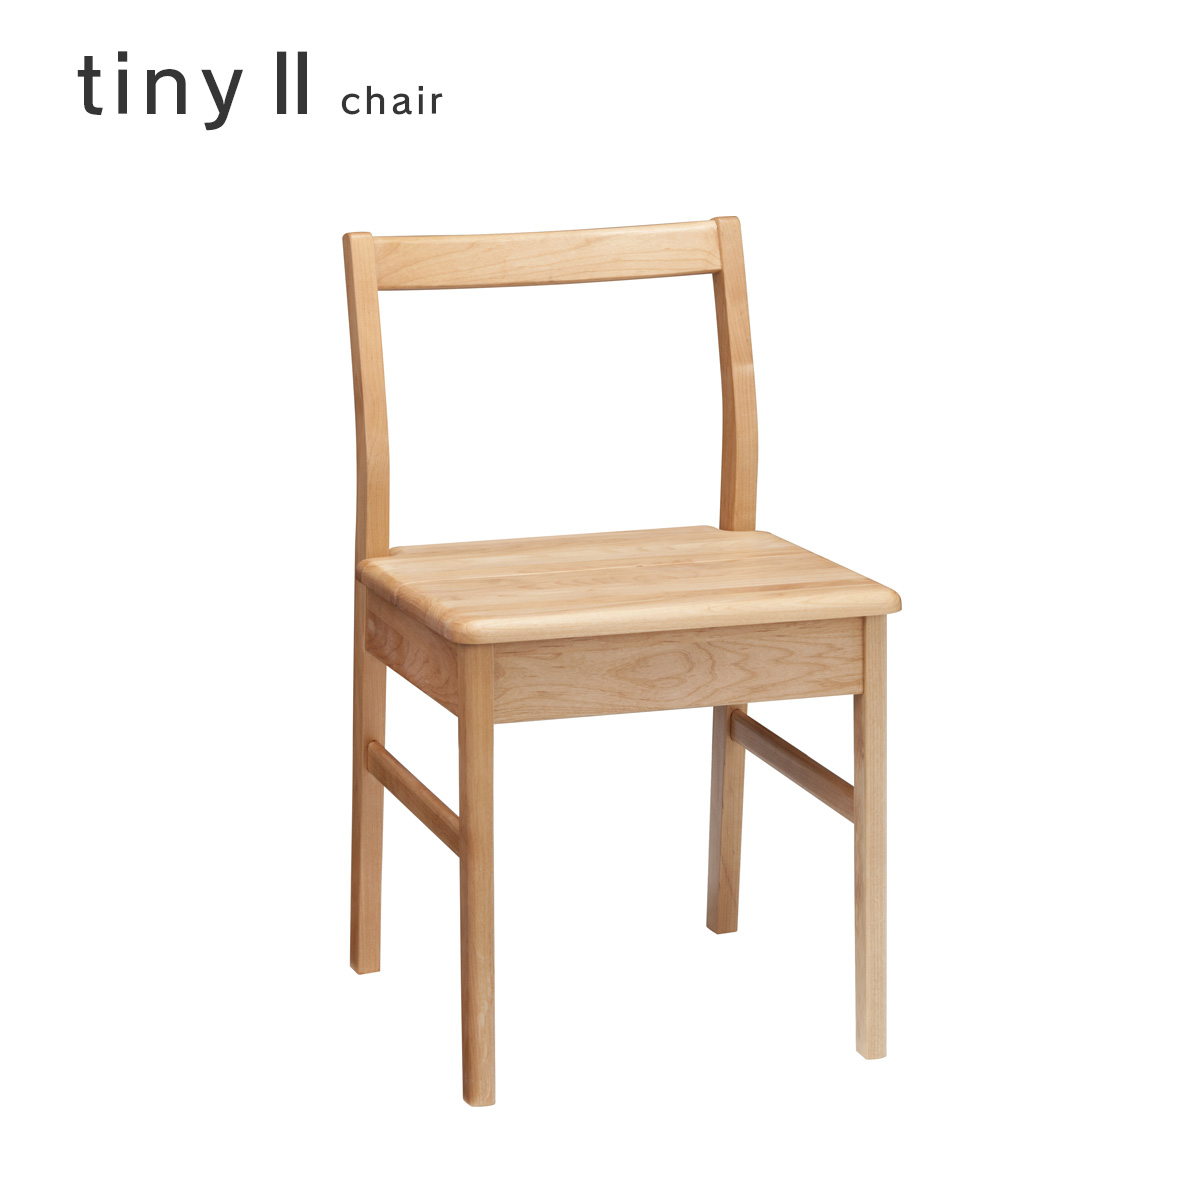 tiny2 チェア タイニー2 CHAIR イス 天然木 e-room